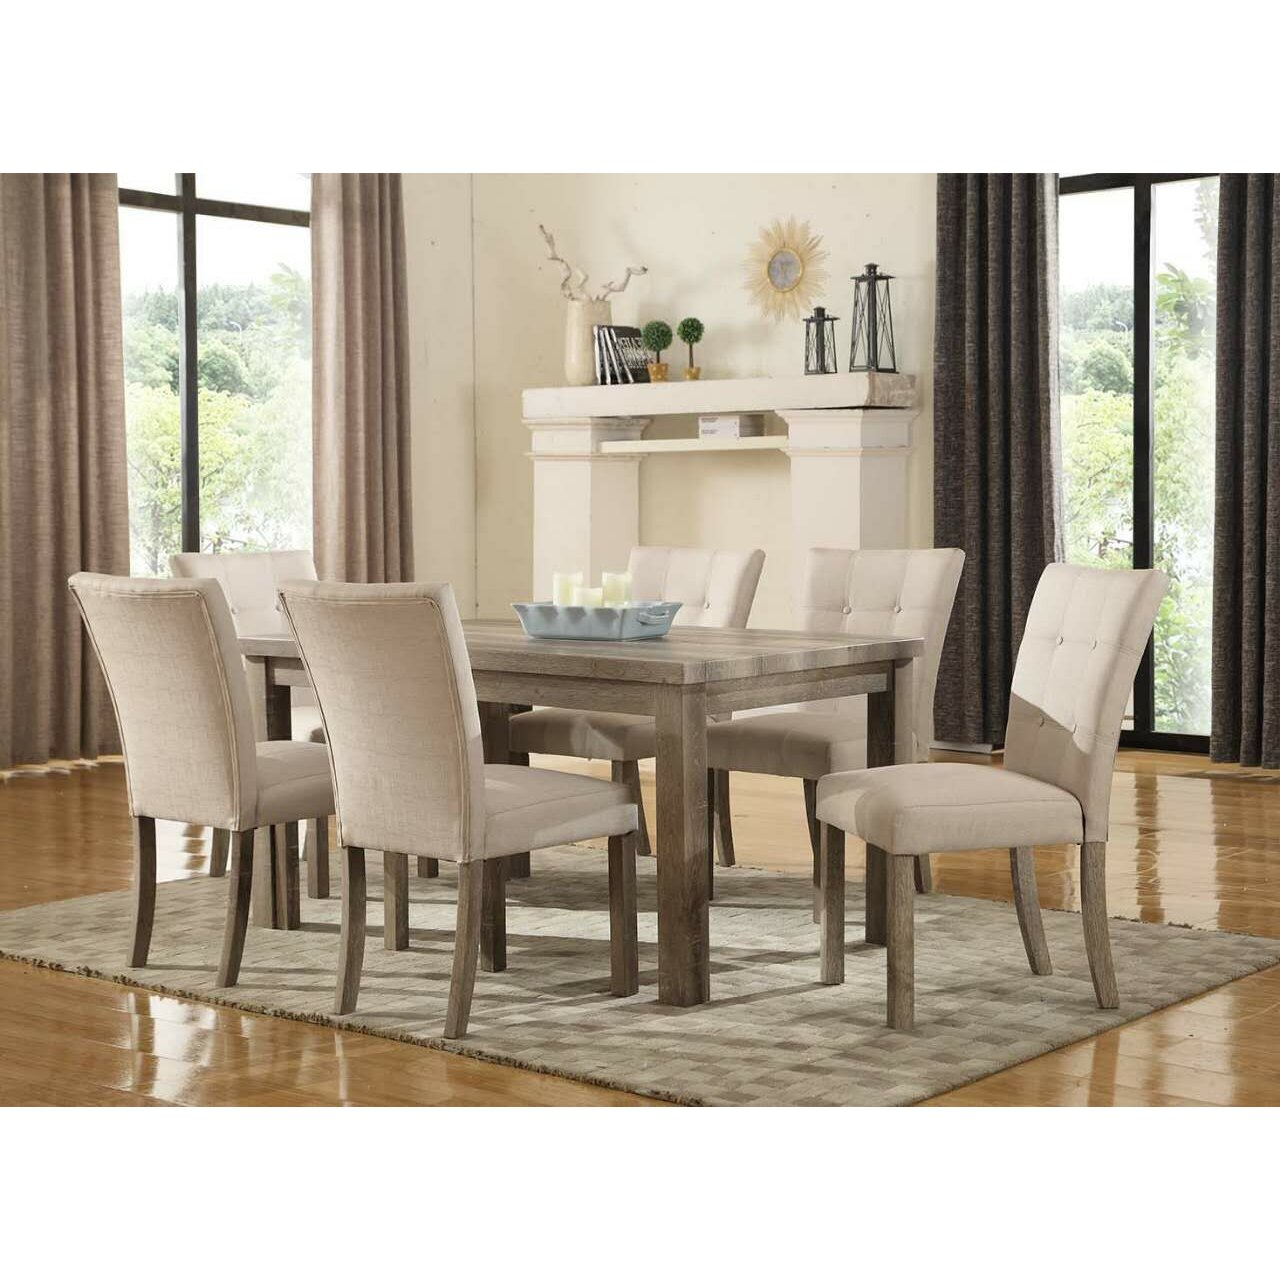 Set Dining Room Table: Ultimate Accents Urban 7 Piece Dining Set & Reviews